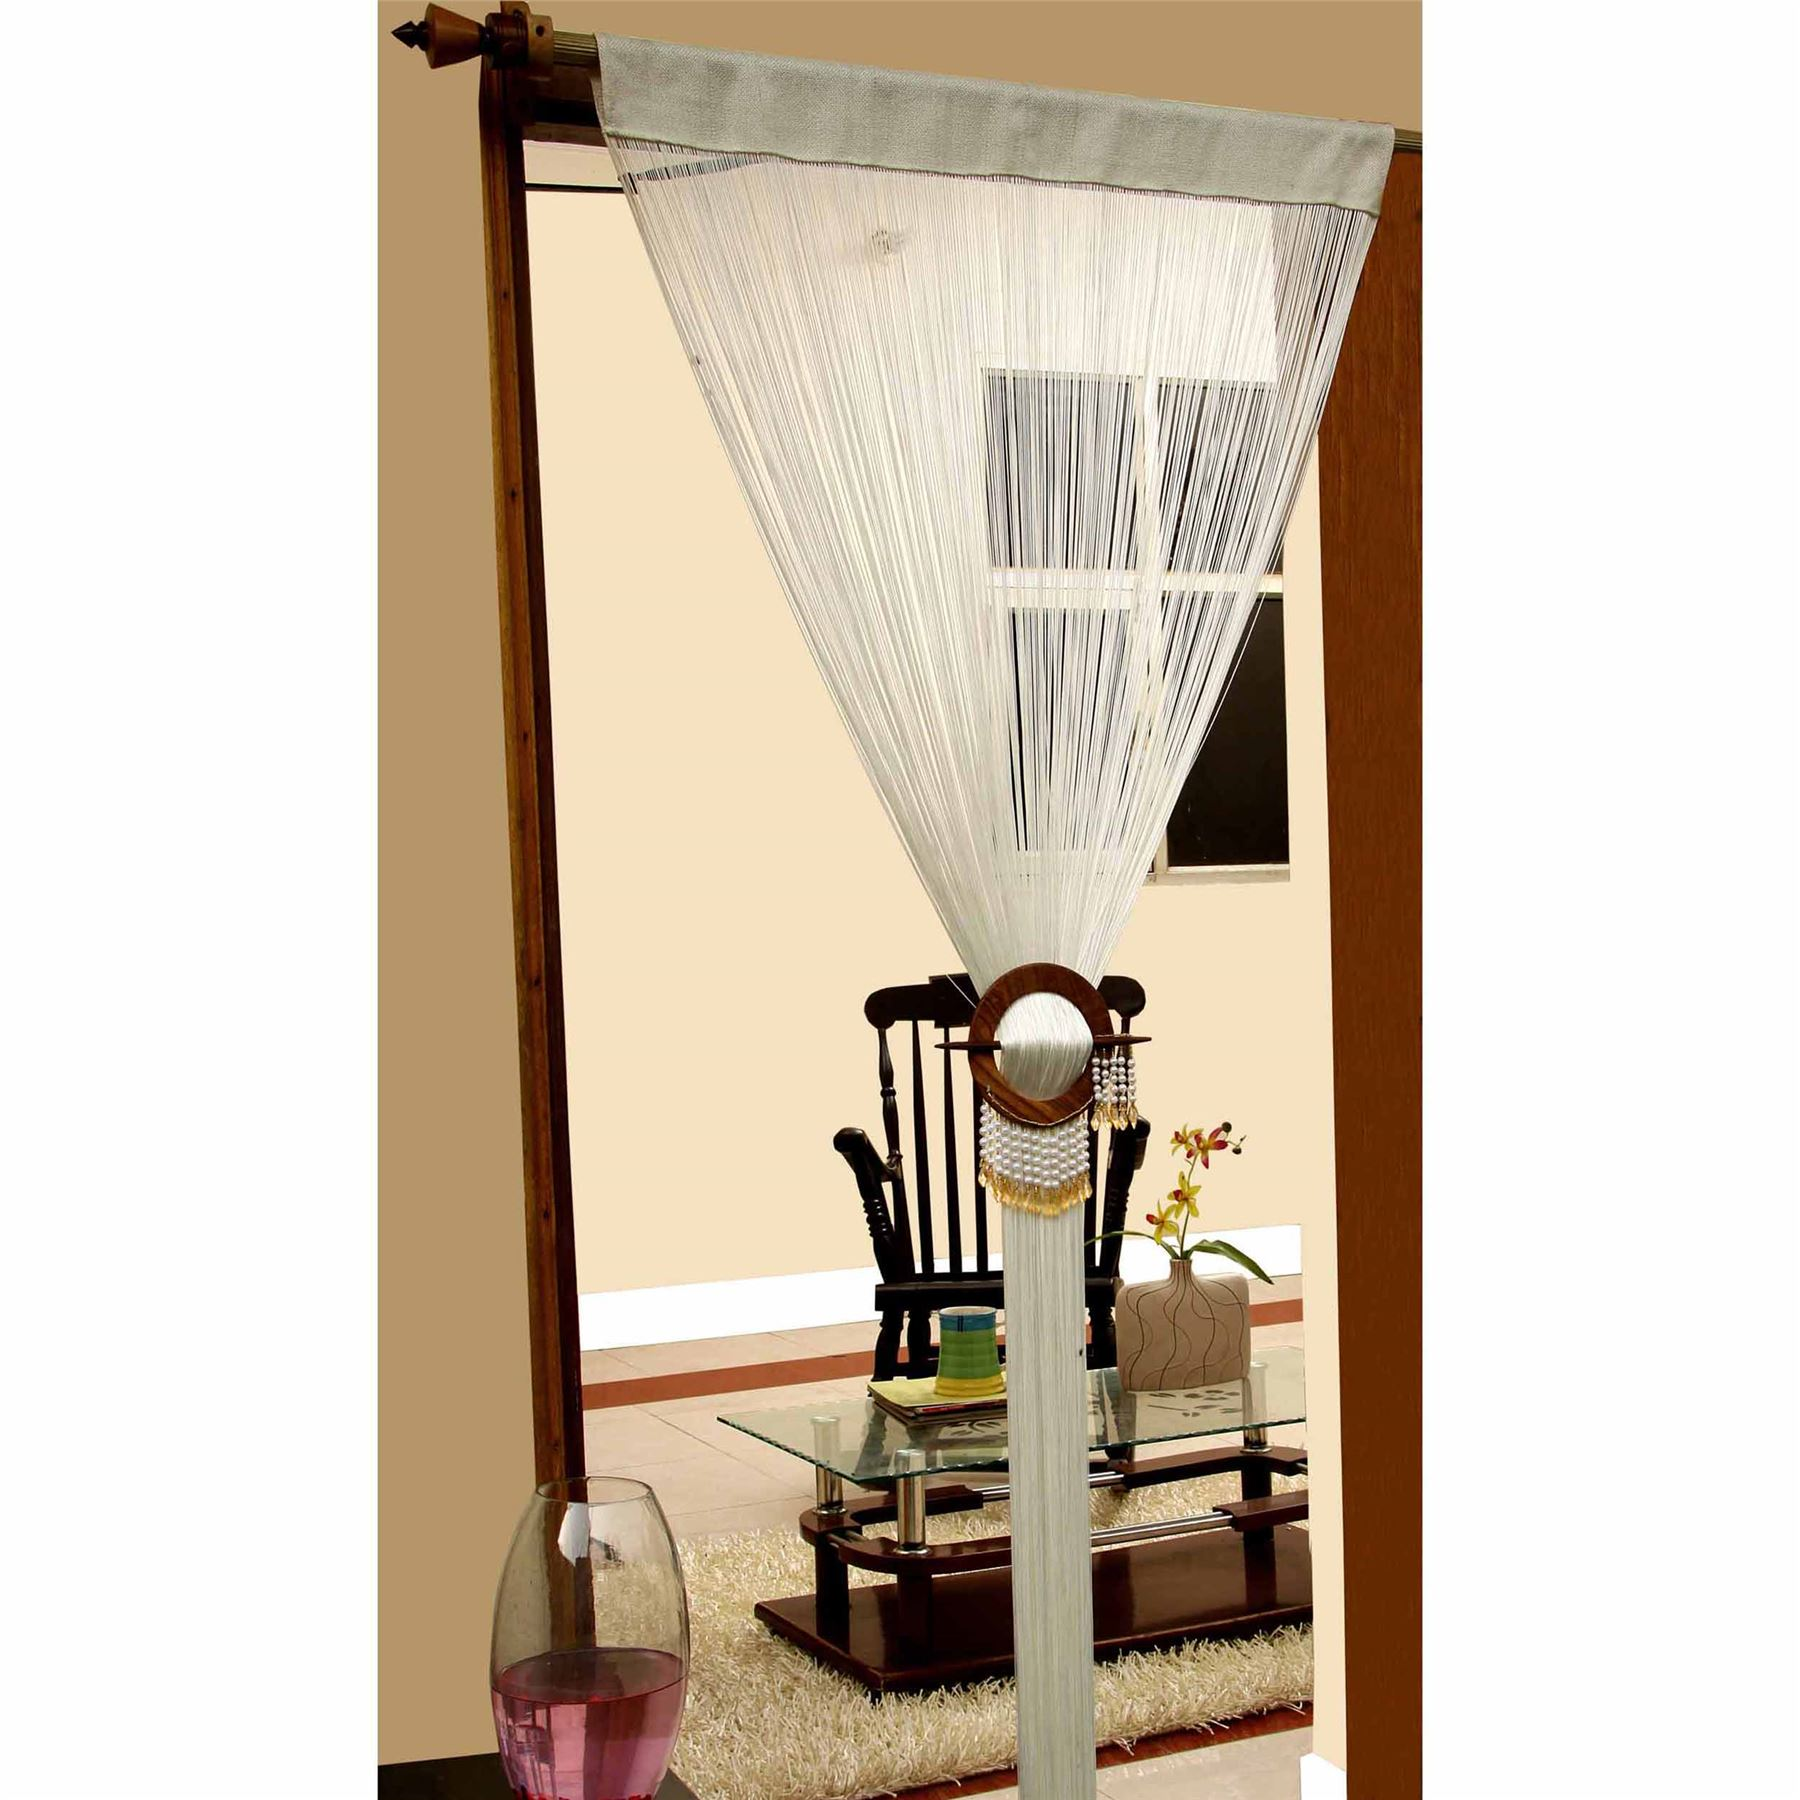 Waterproof Curtain For Shower Window Beautiful Curtain Room Divider